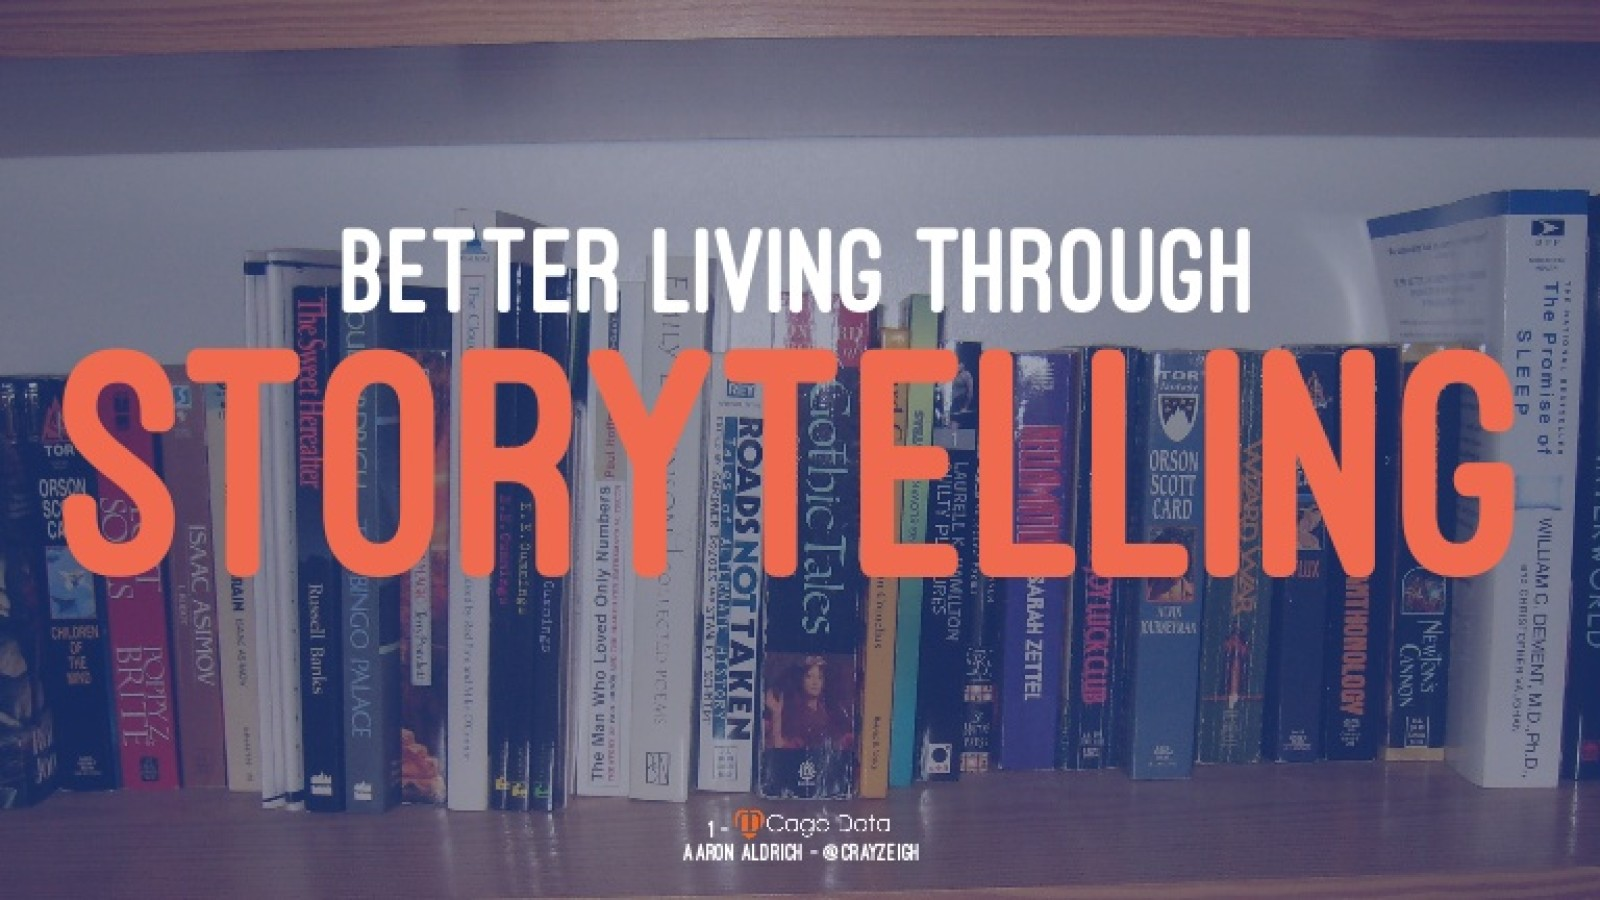 Better Living Through Storytelling